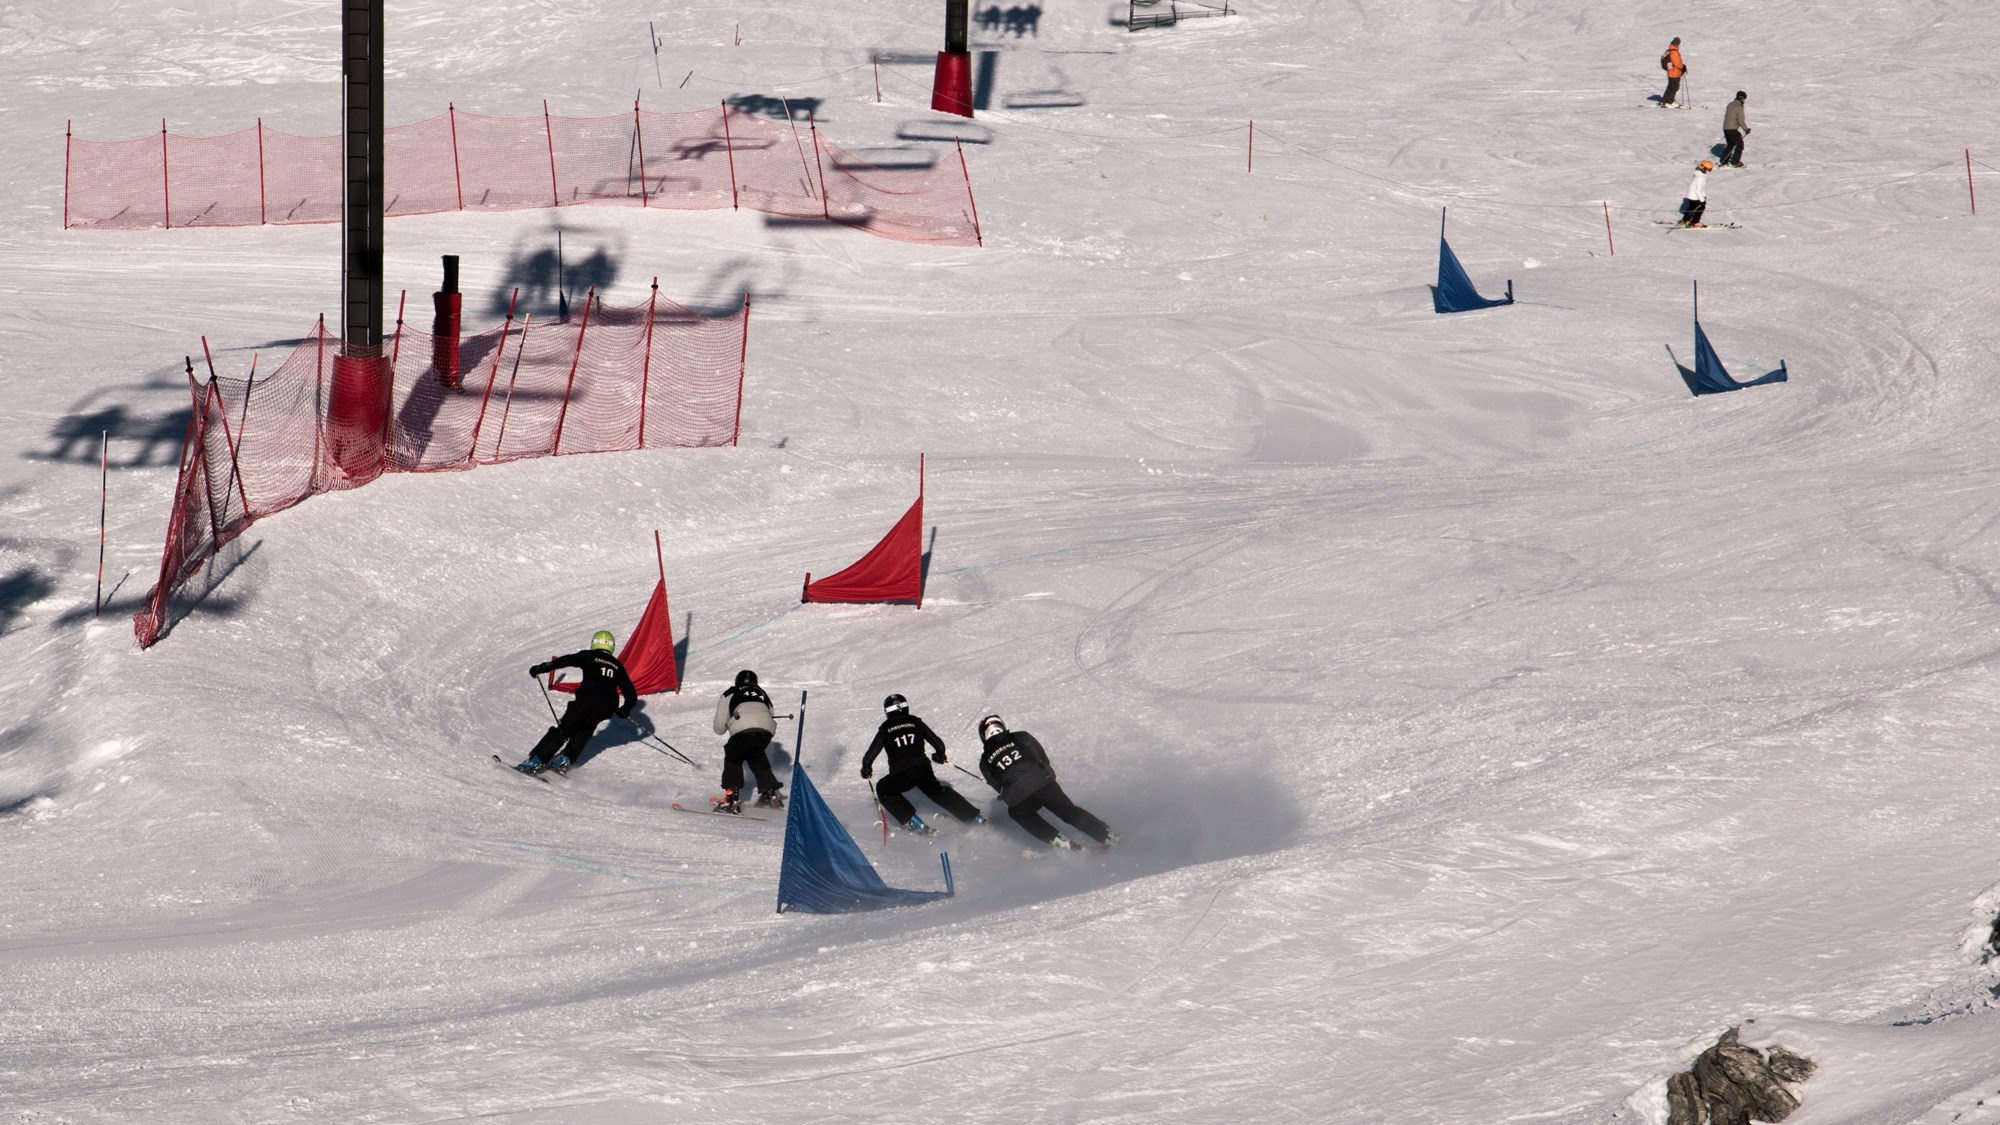 Cardrona Gravity Cross Ski